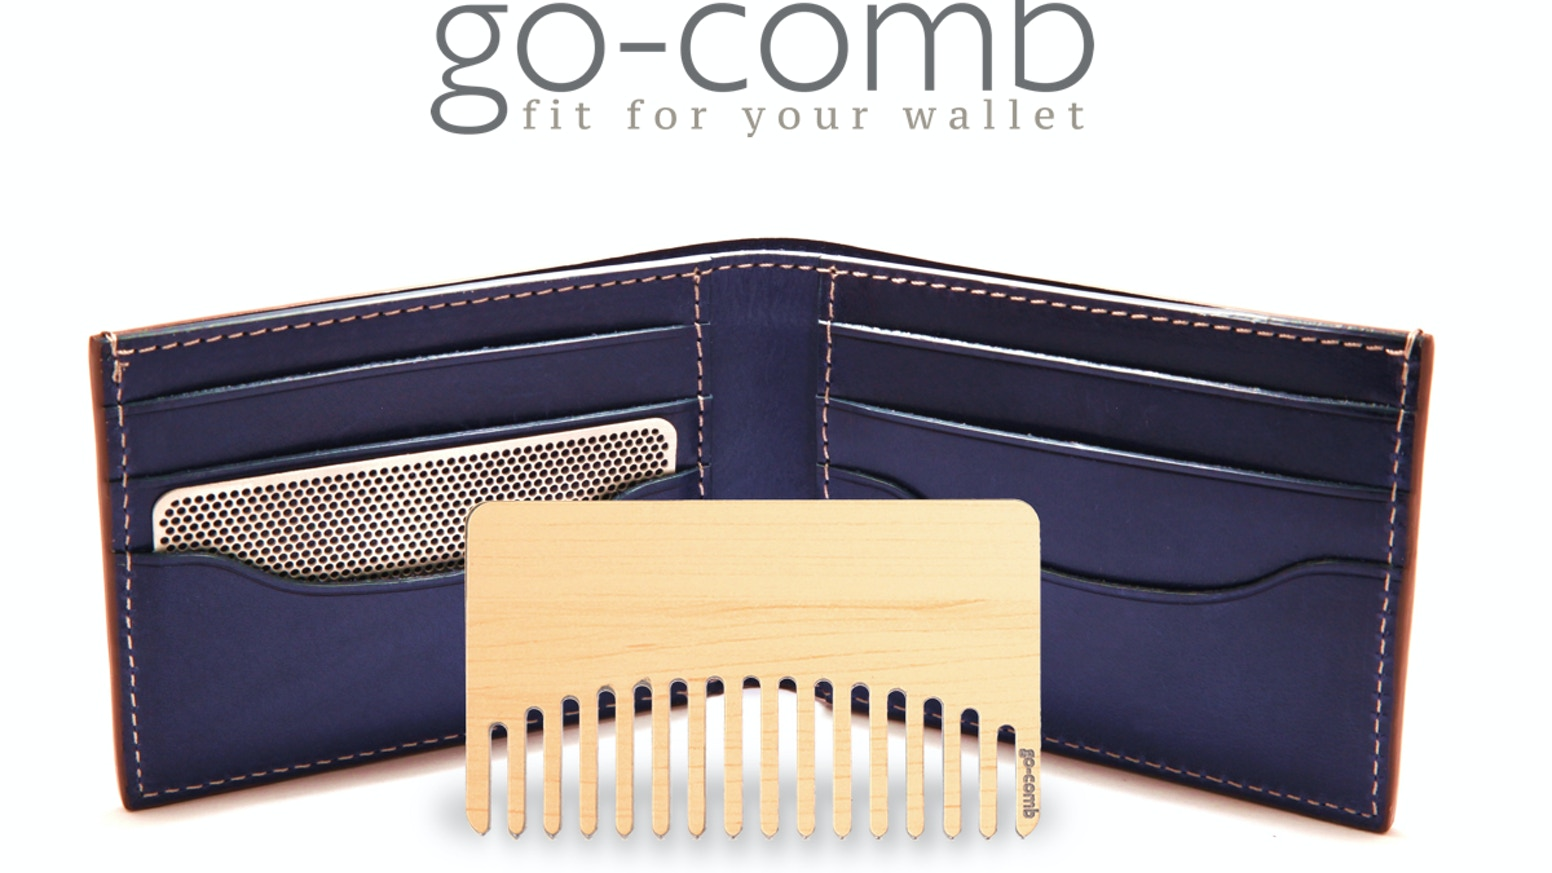 We're up and running! go-comb: a hair comb, or mirror combo, that fits right in your wallet. Styles for women and men, great for gifting.